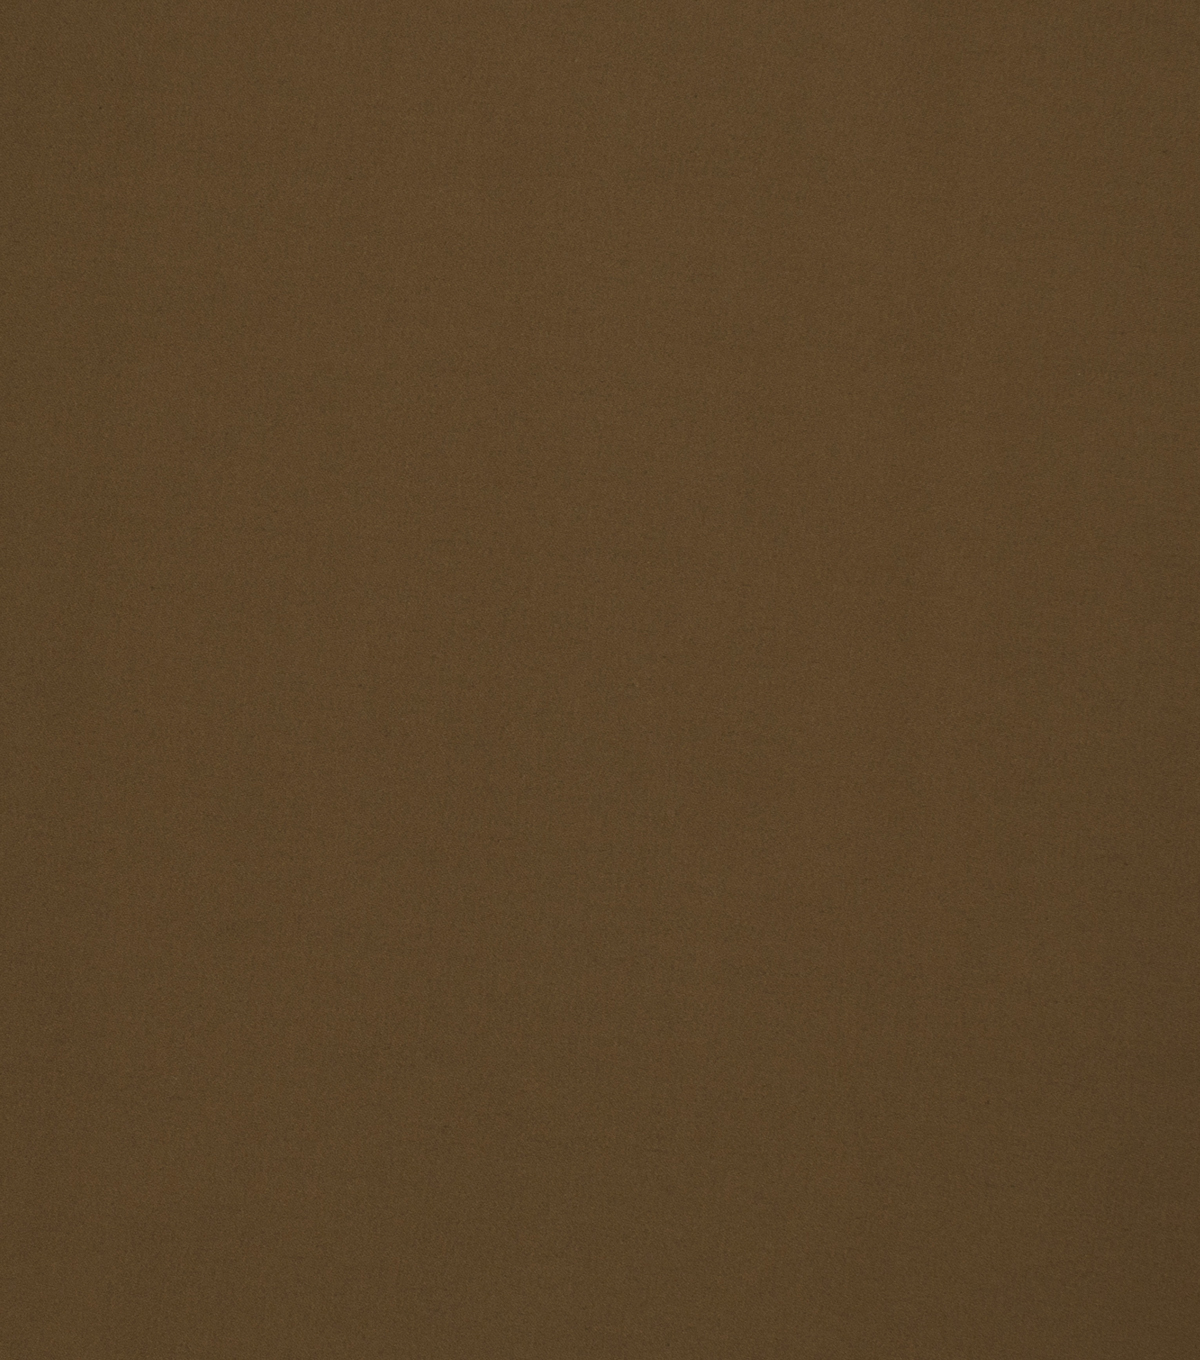 Home Decor 8x8 Fabric Swatch-Eaton Square Bandora Walnut